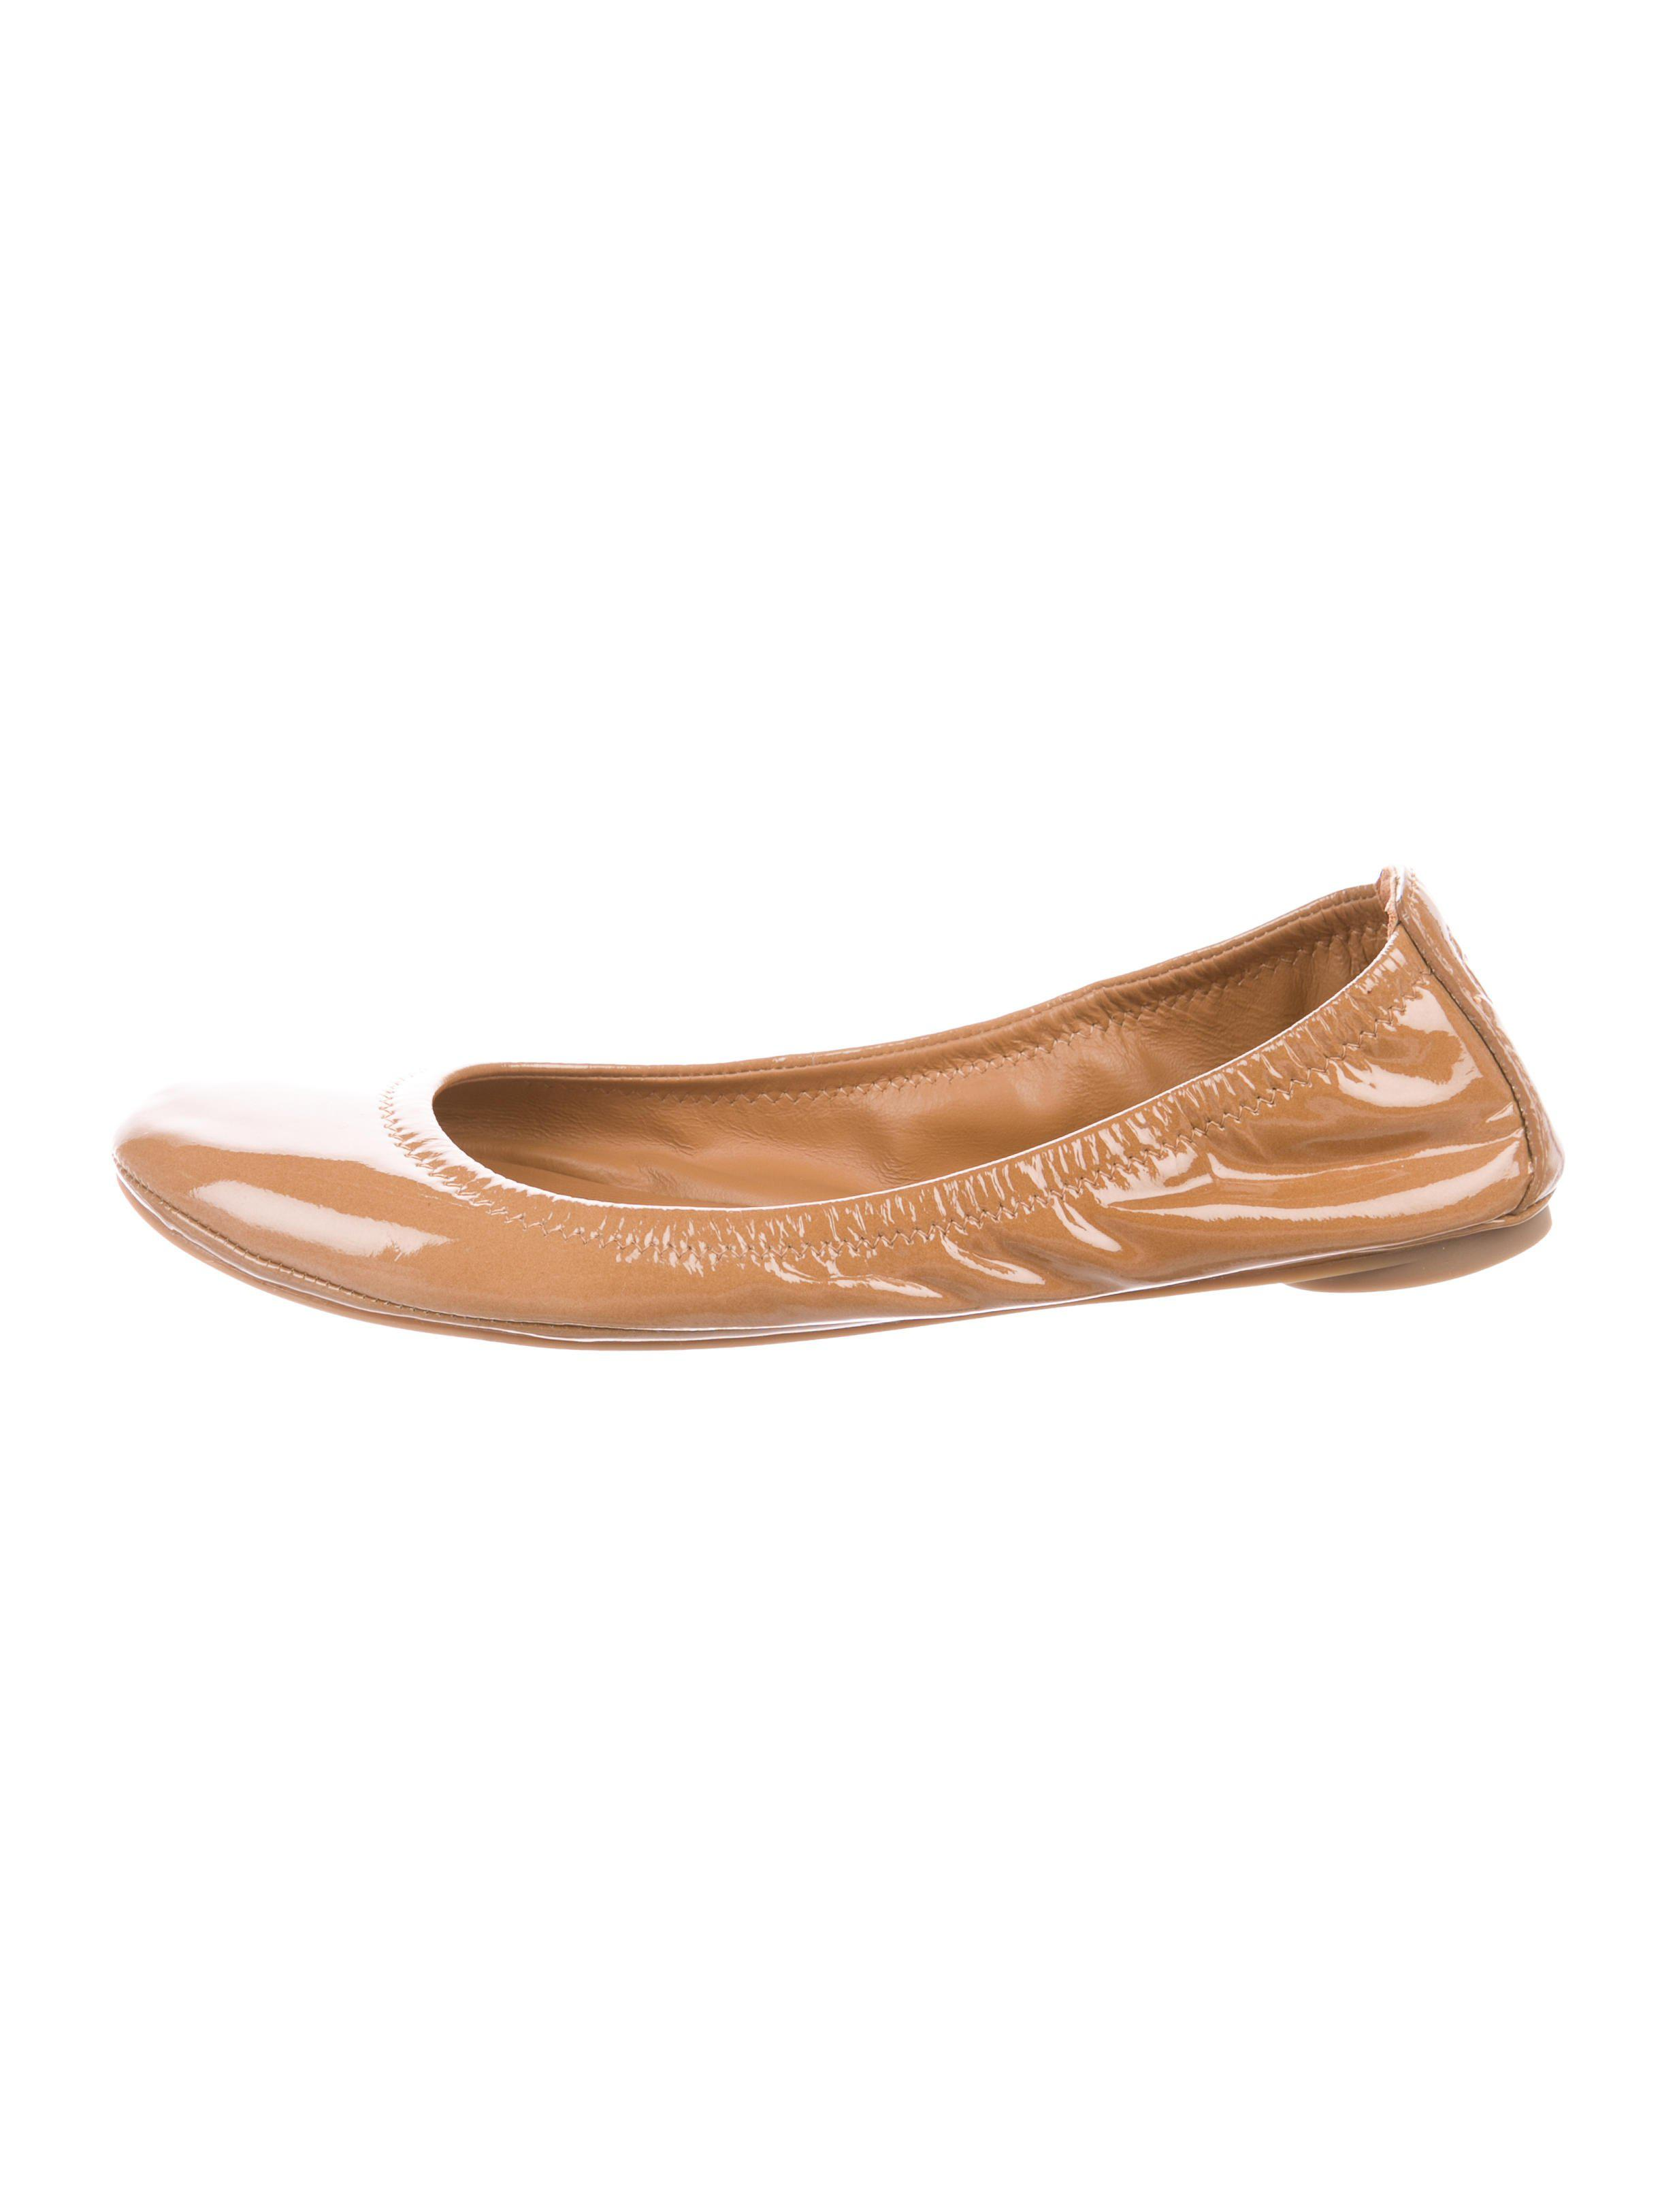 b50d6b5af850 Lyst - Tory Burch Patent Leather Ballet Flats Tan in Natural